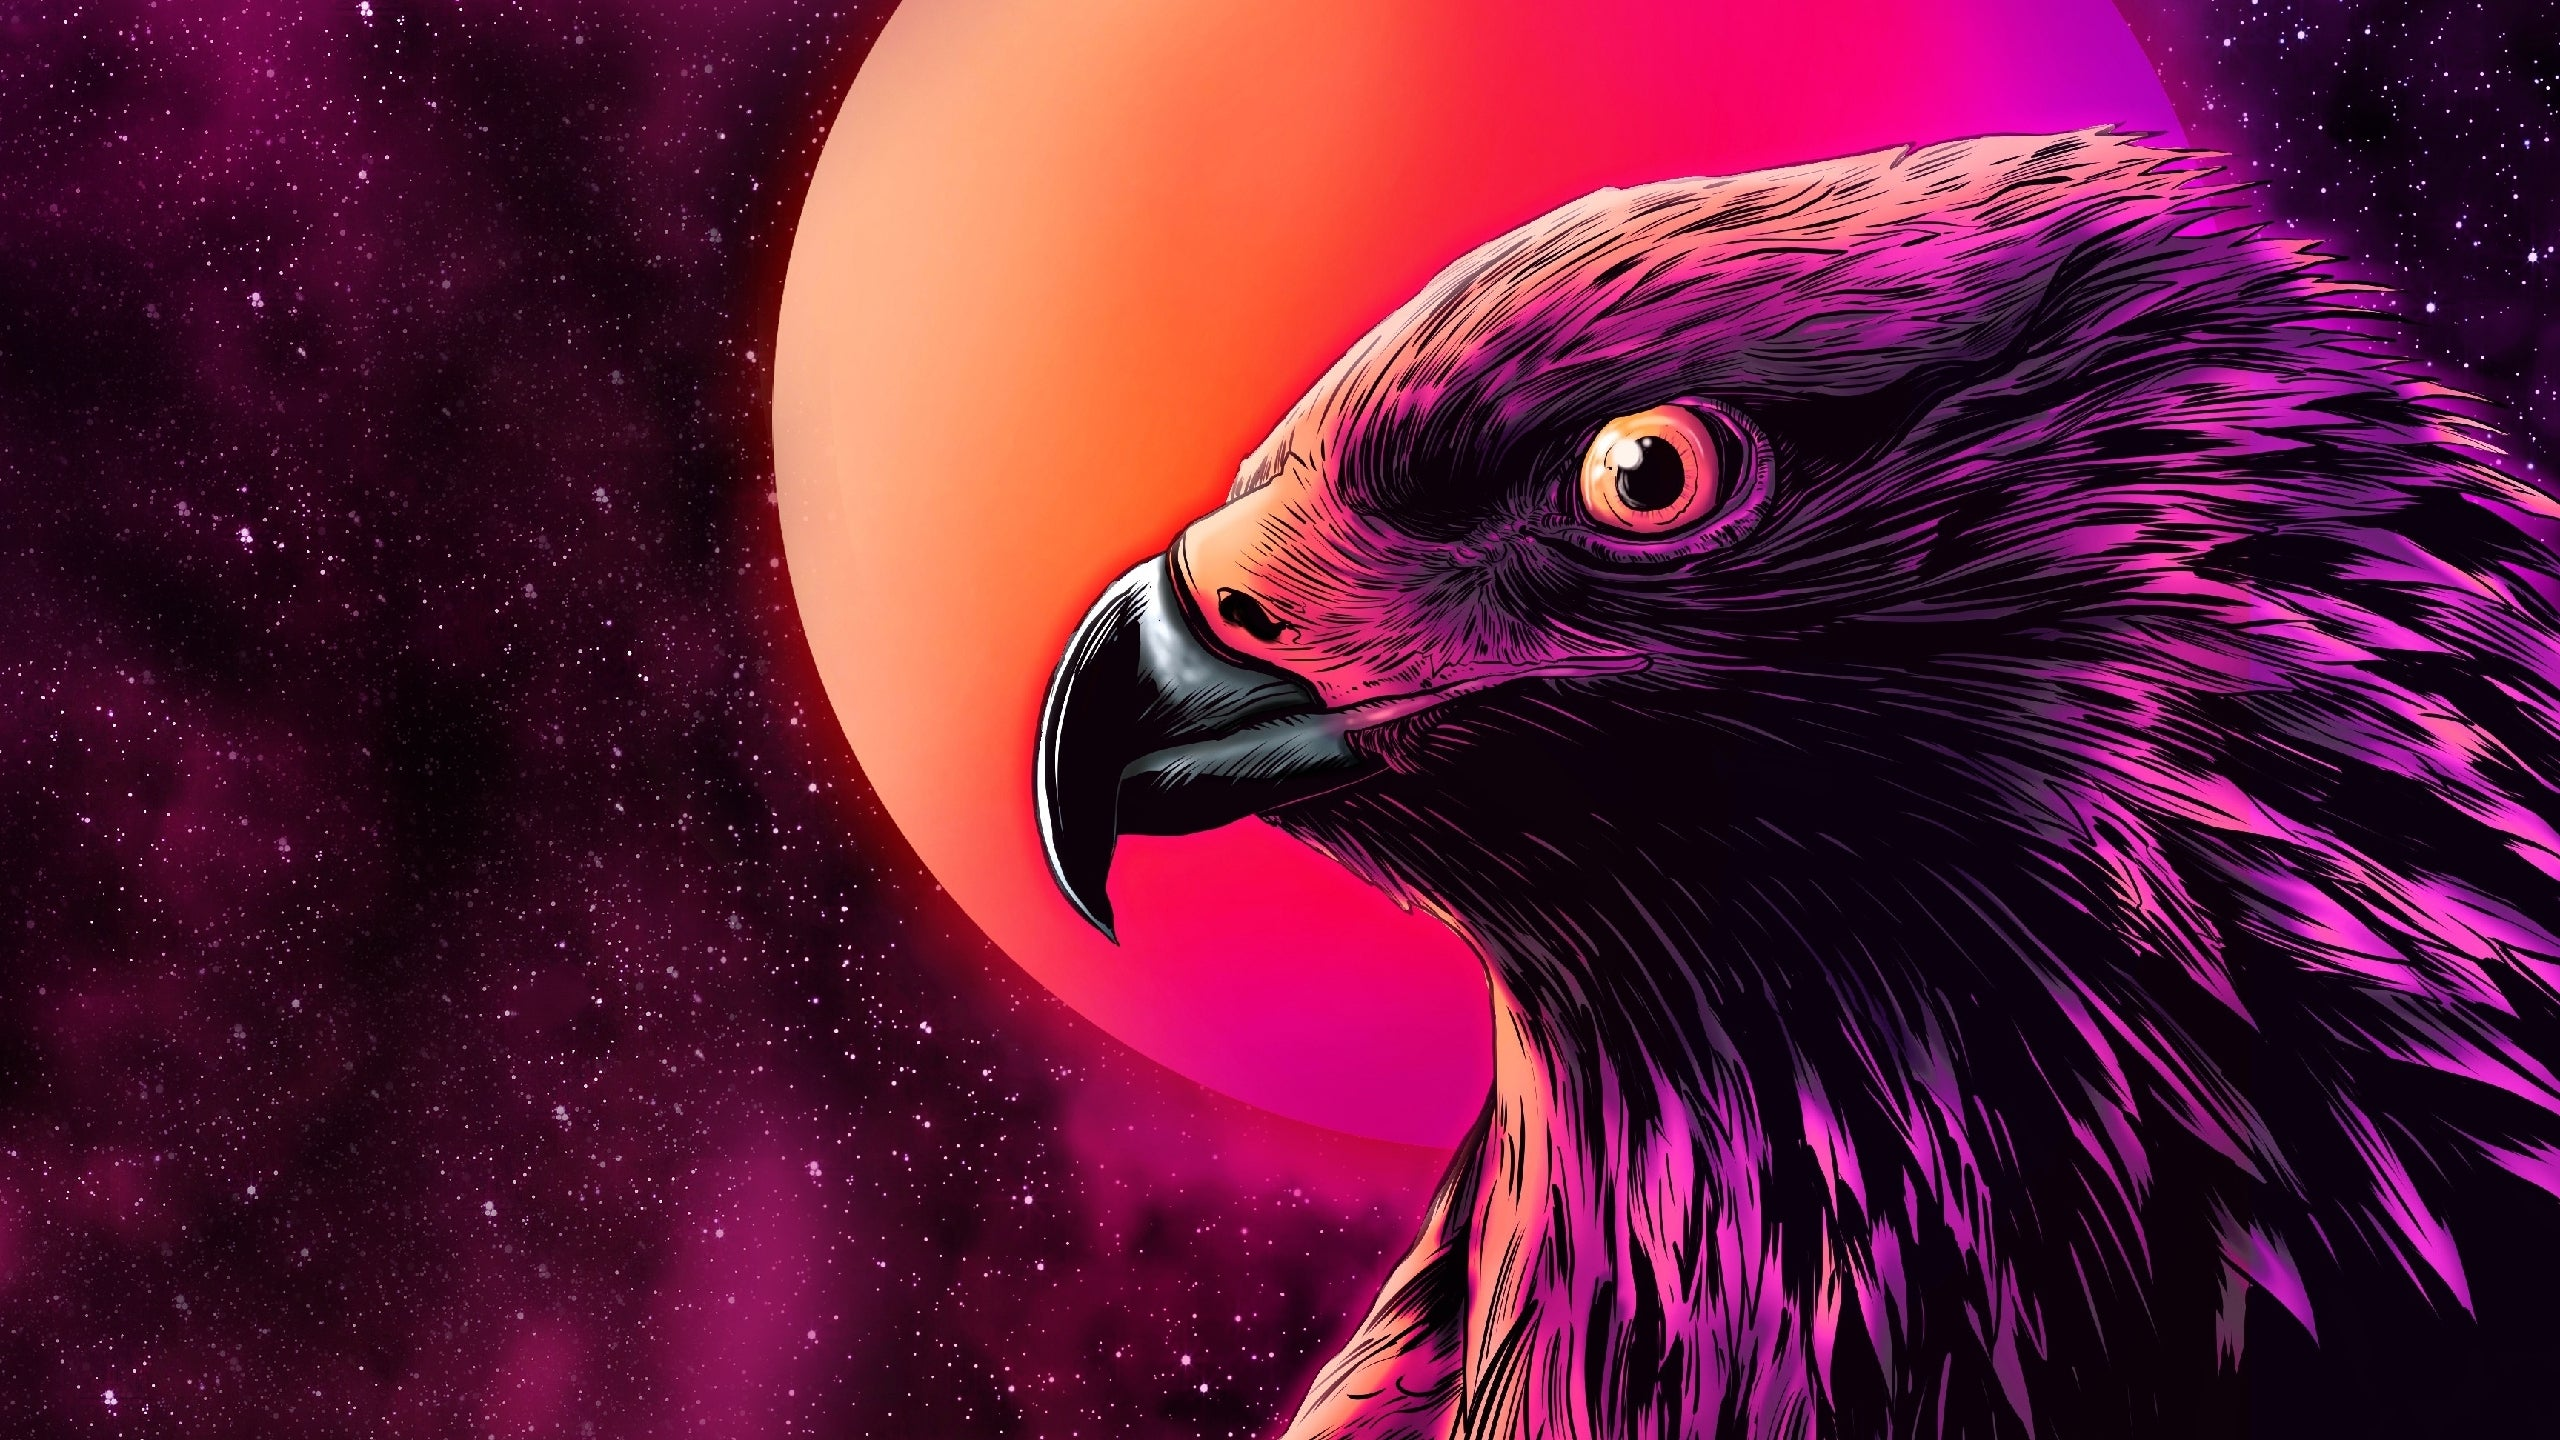 Eagle 4k Wallpapers For Your Desktop Or Mobile Screen Free And Easy To Download